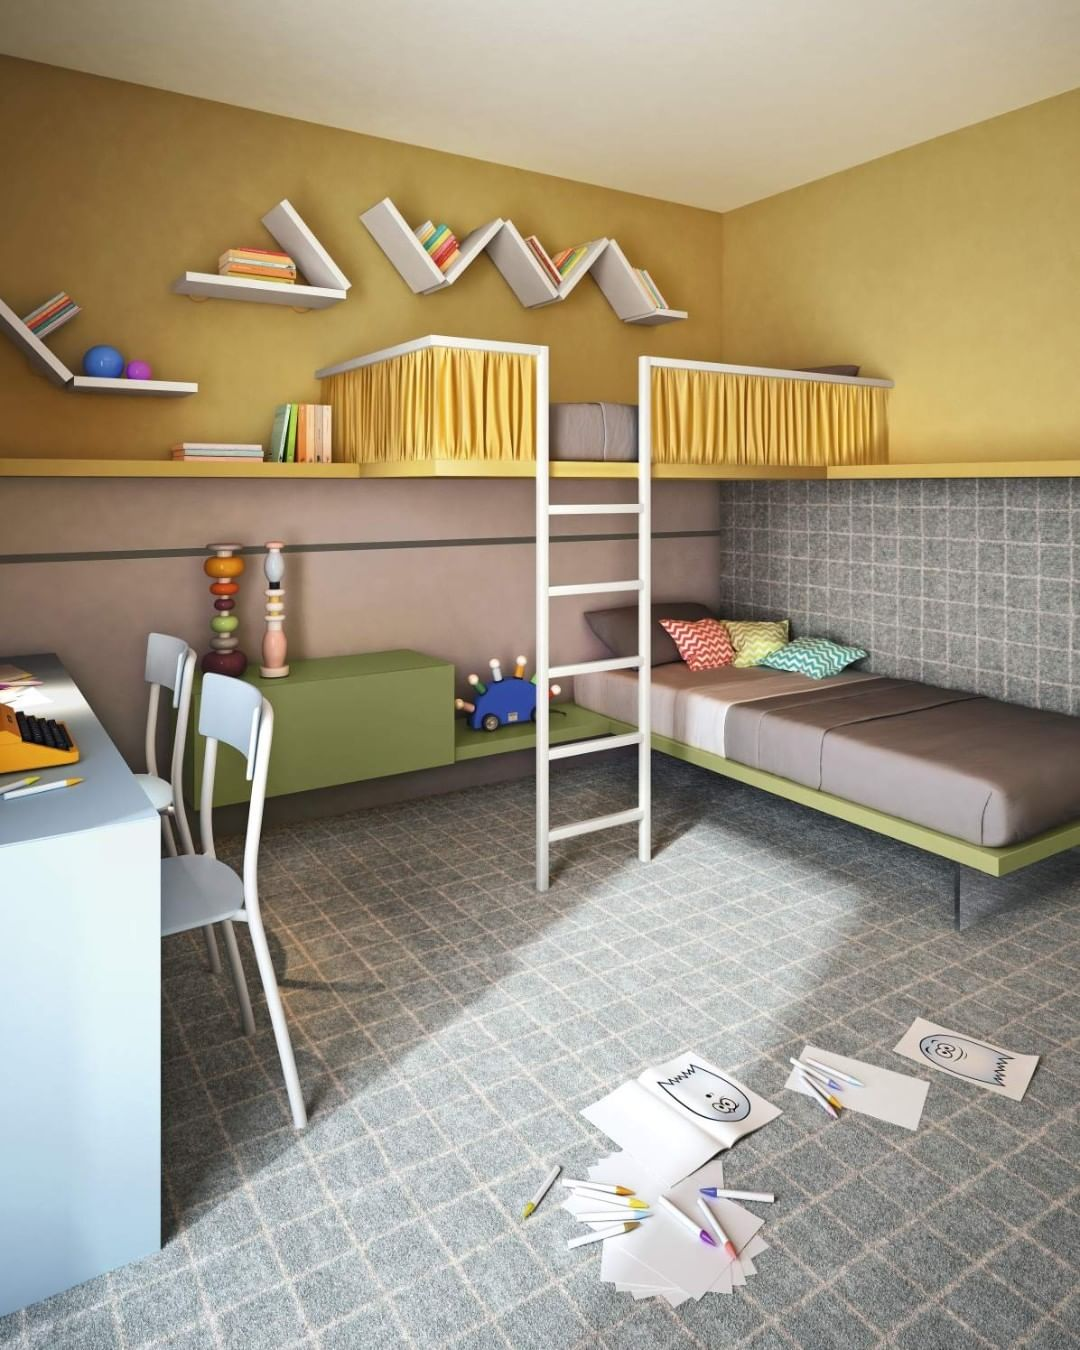 A children's room for dreaming, growing ...